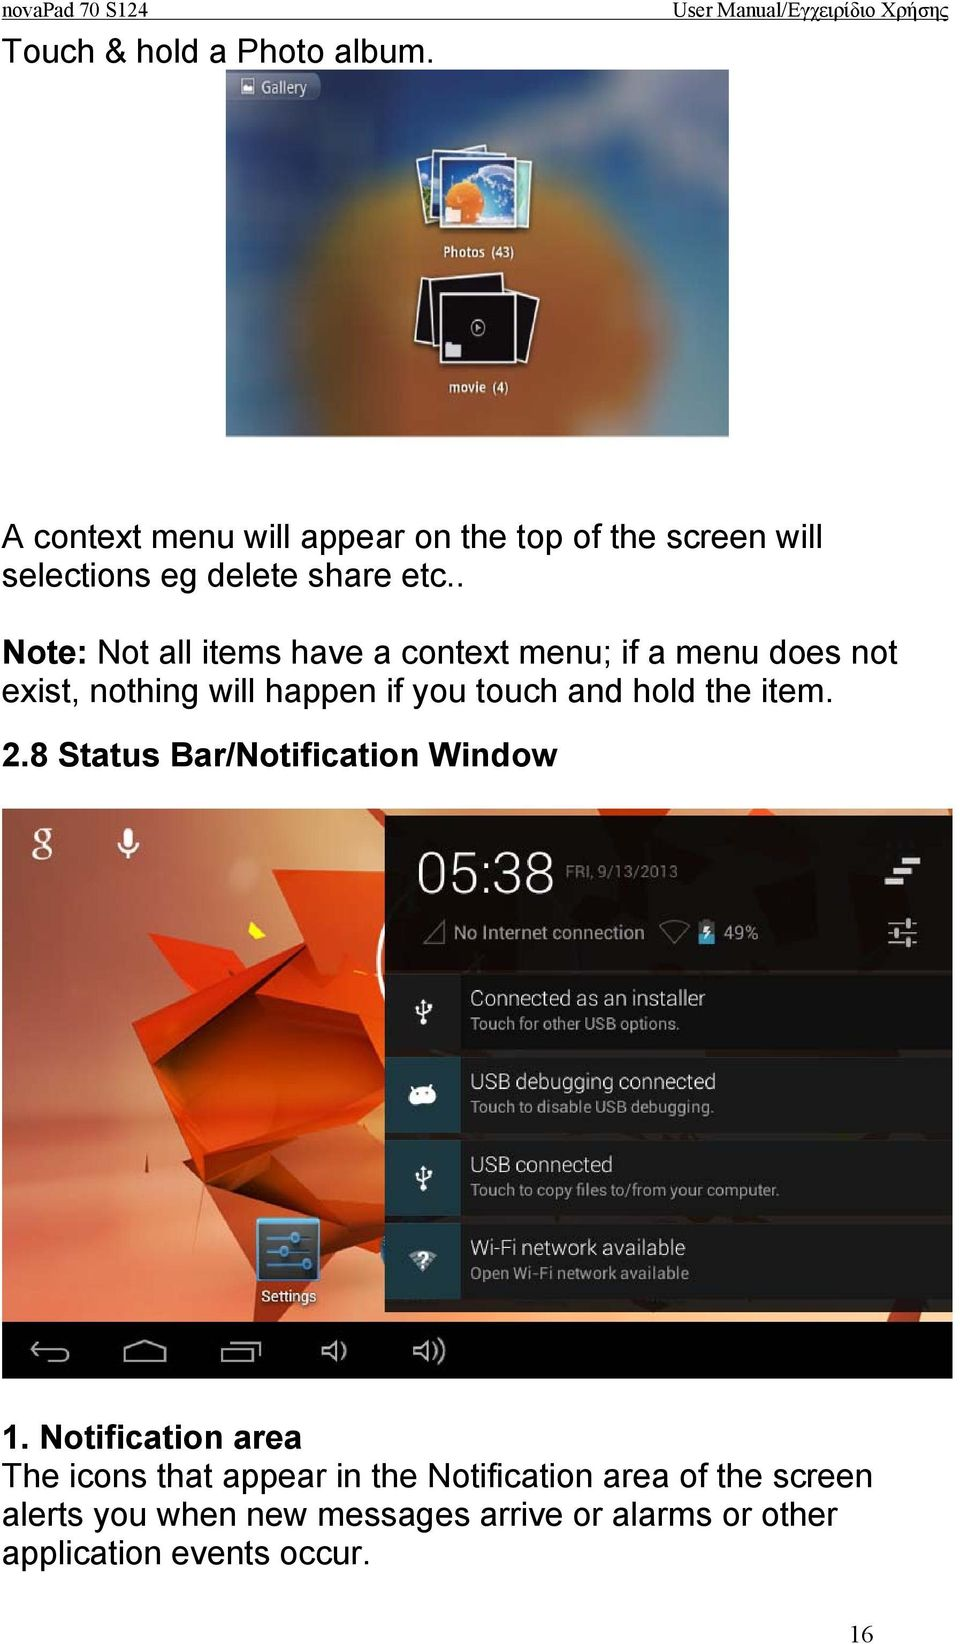 . Note: Not all items have a context menu; if a menu does not exist, nothing will happen if you touch and